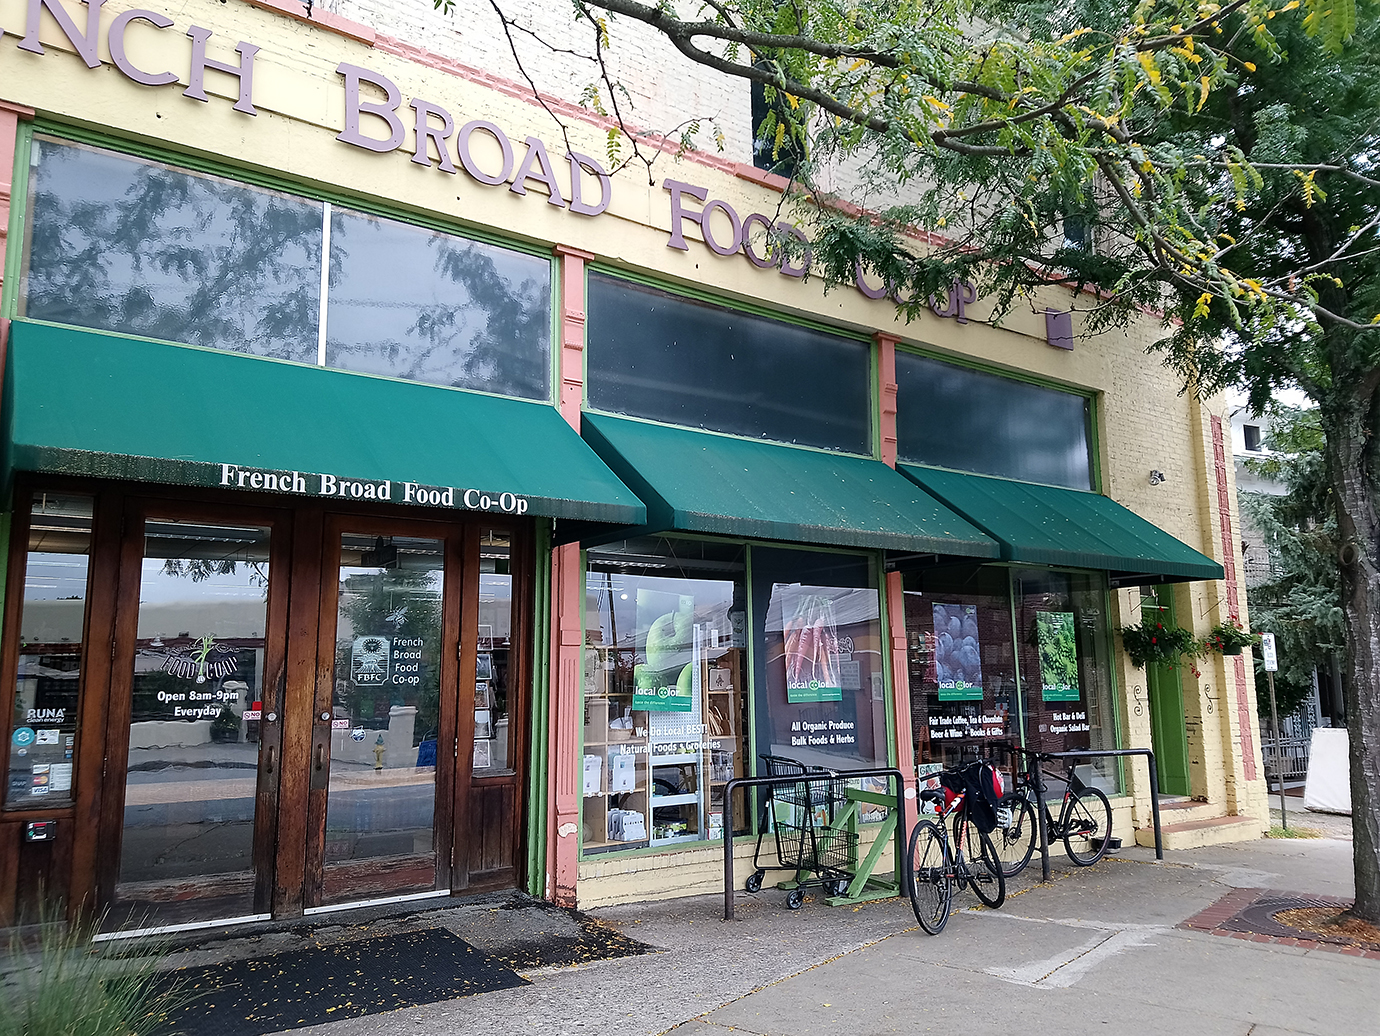 French Broad Food Co-op Review from stuhelmfoodfan